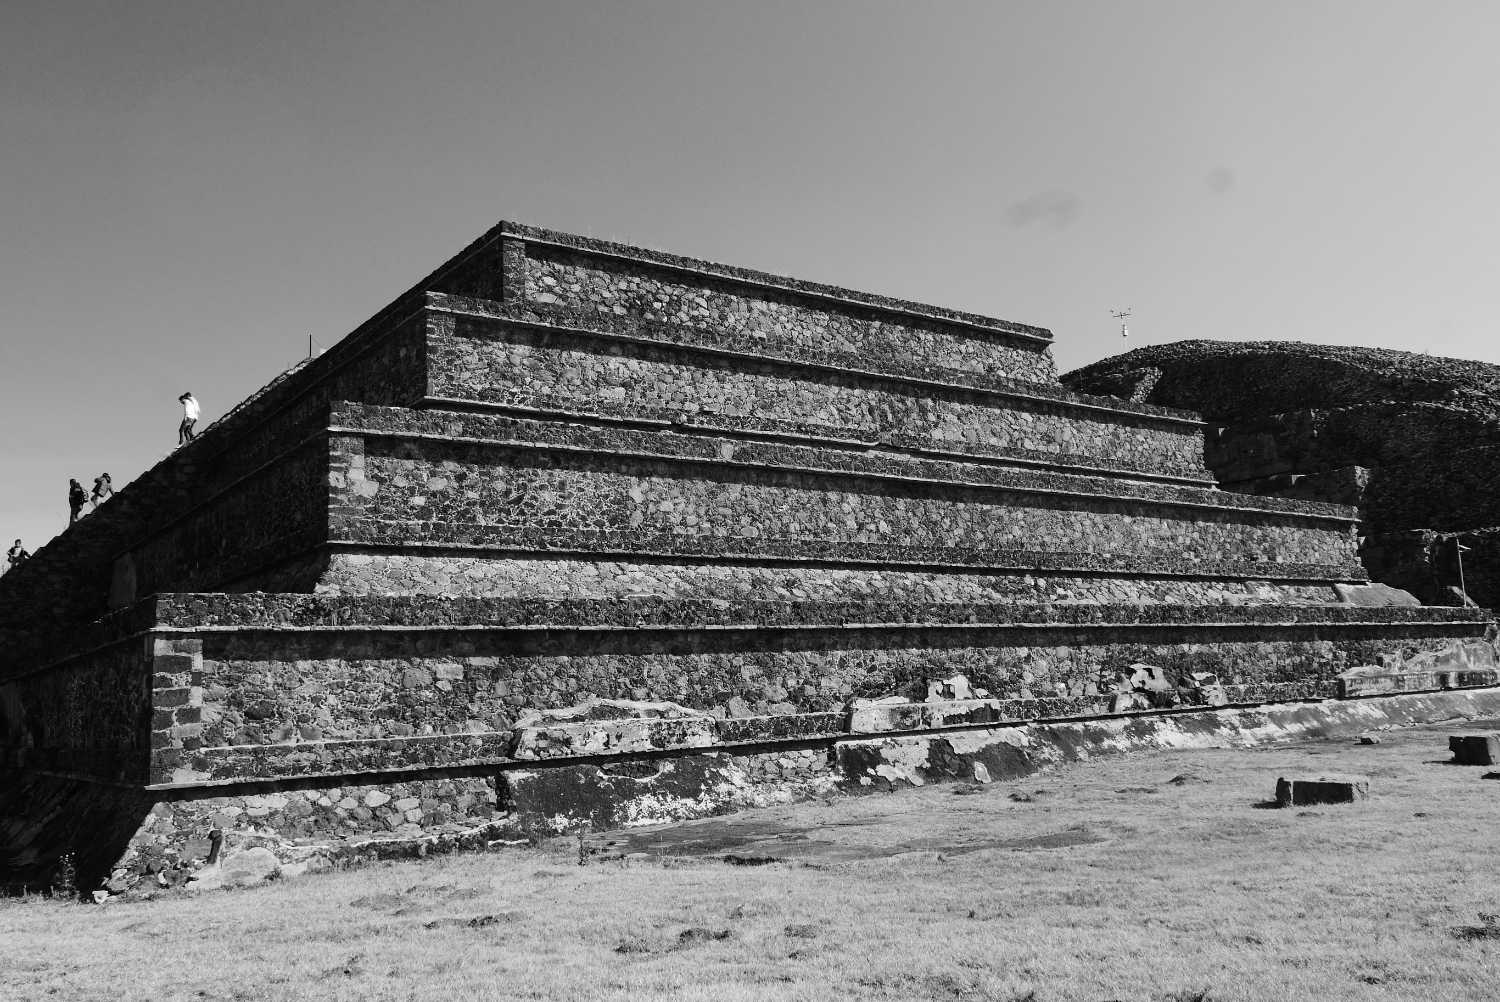 Temple of the Serpent in Teotihuacan